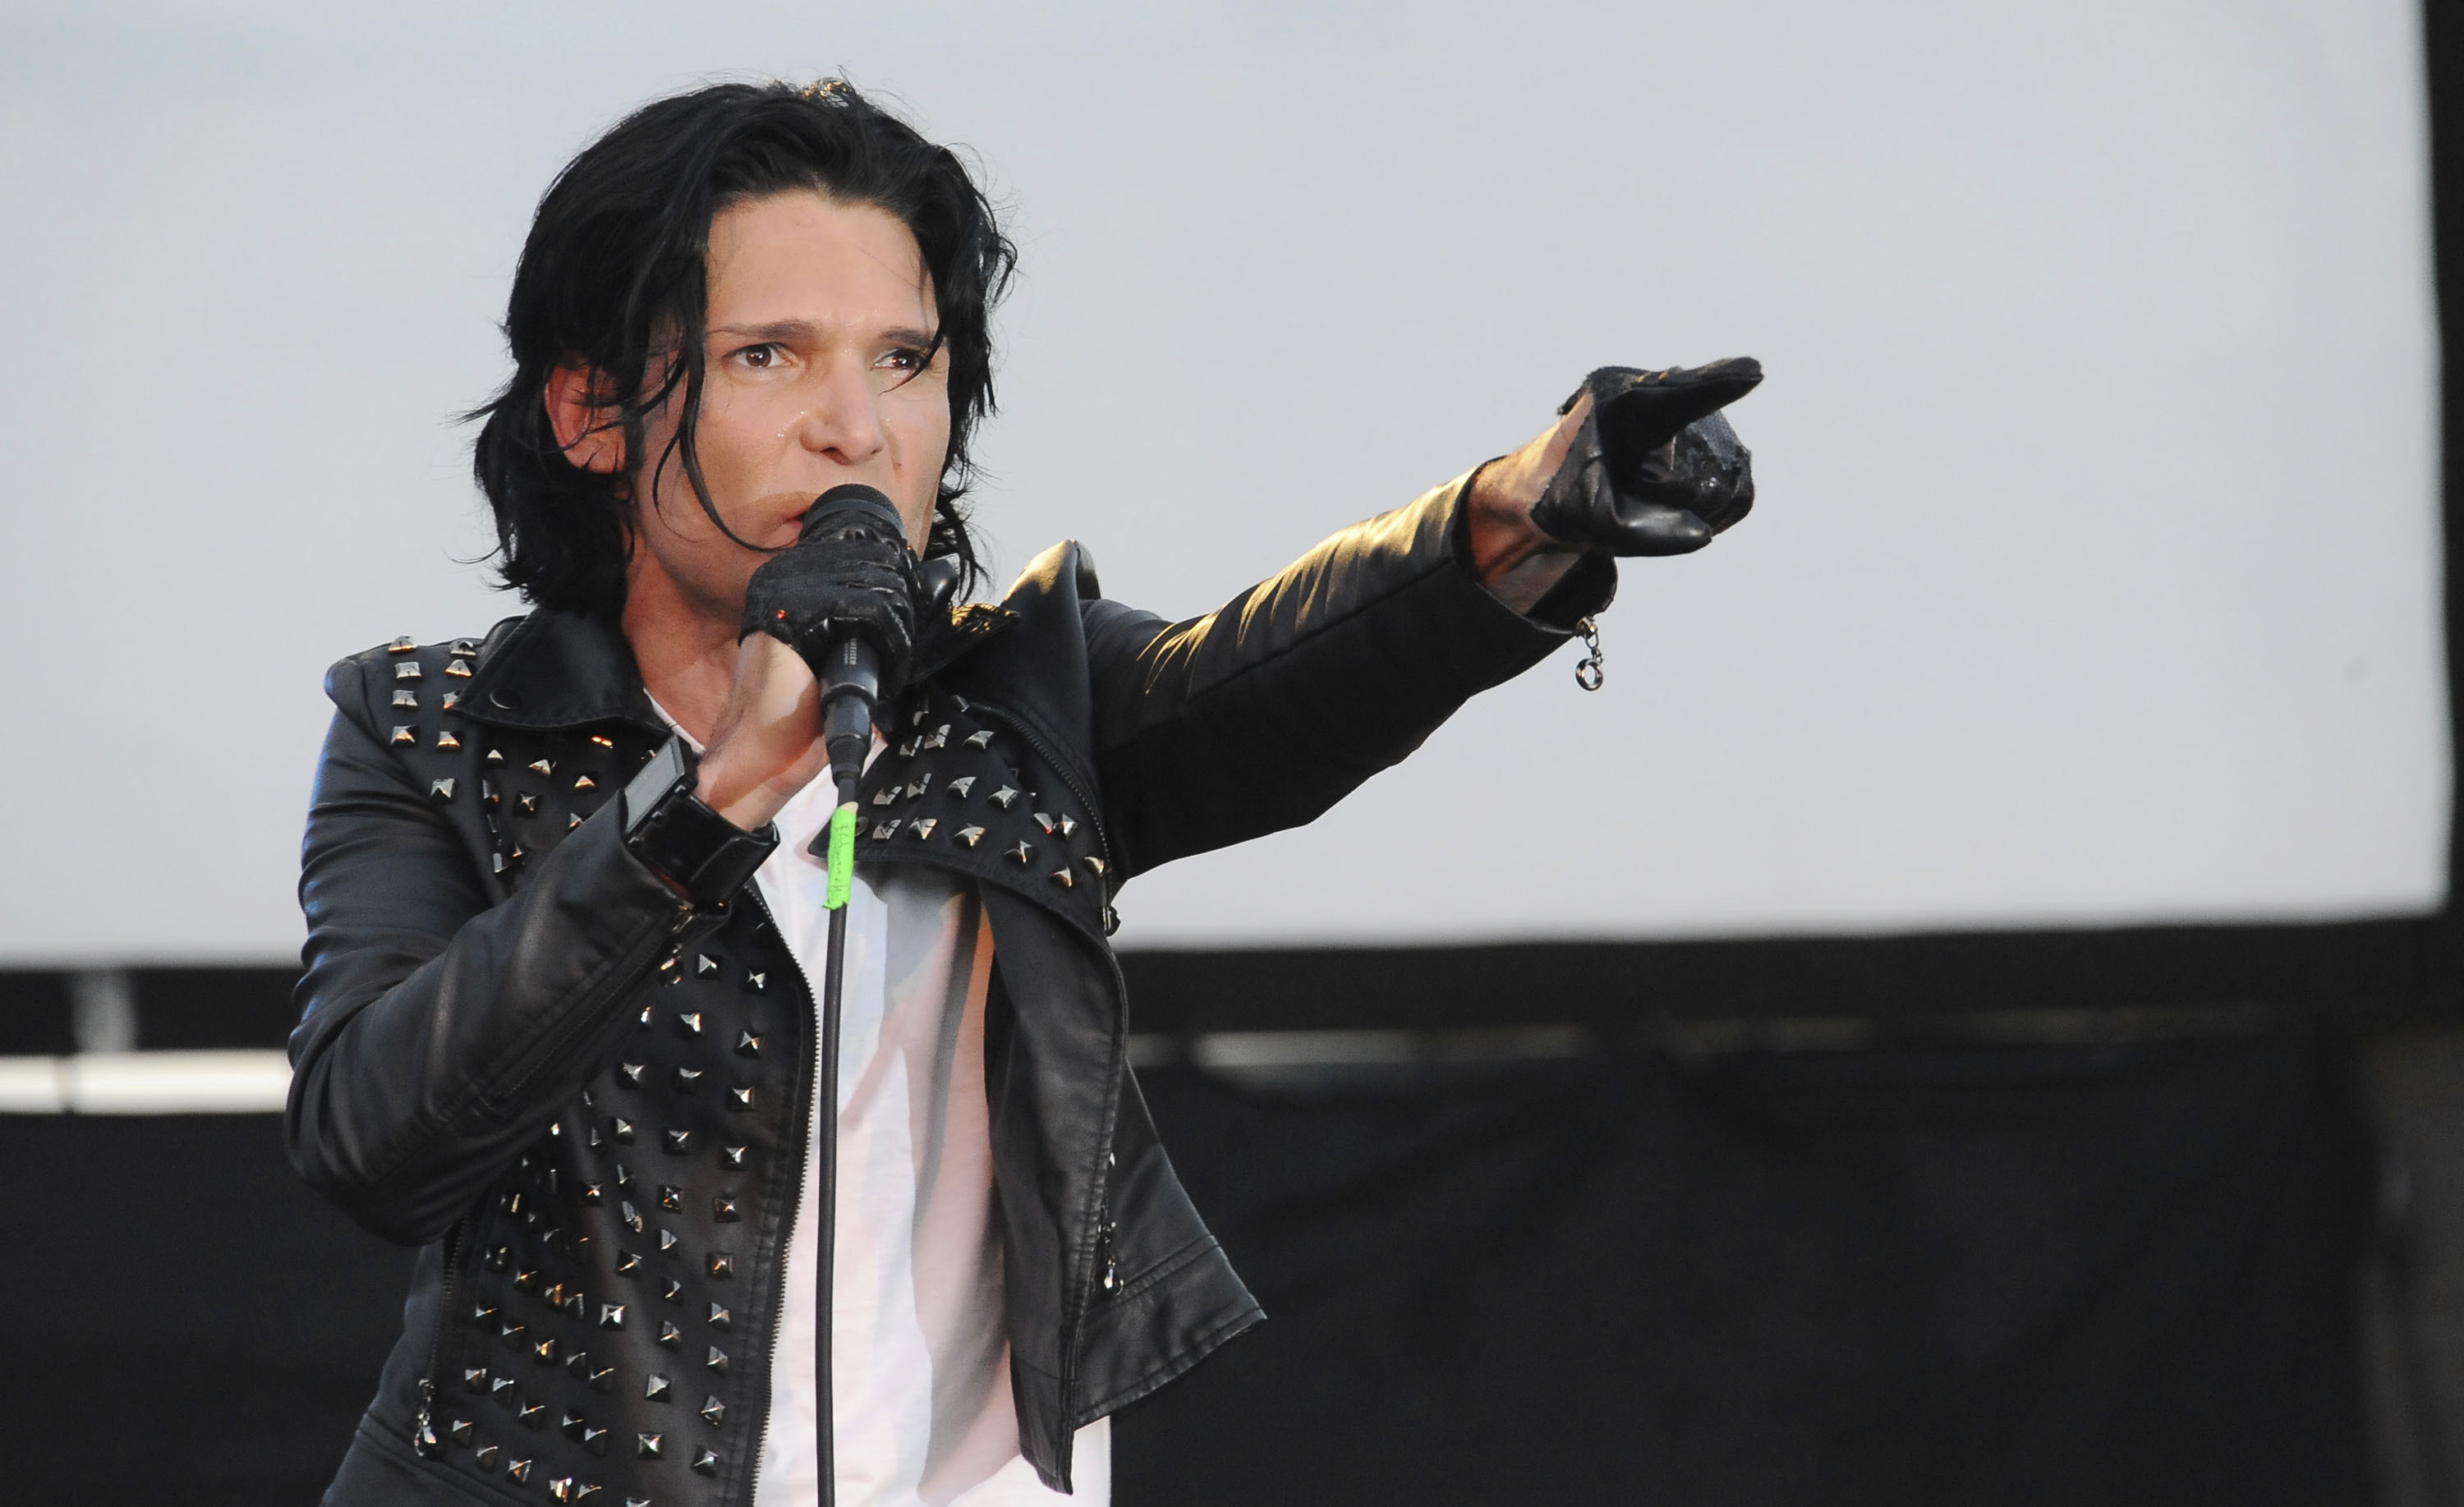 Corey Feldman Names Hollywood Child Abusers In Newly Discovered Tape PA 33408974